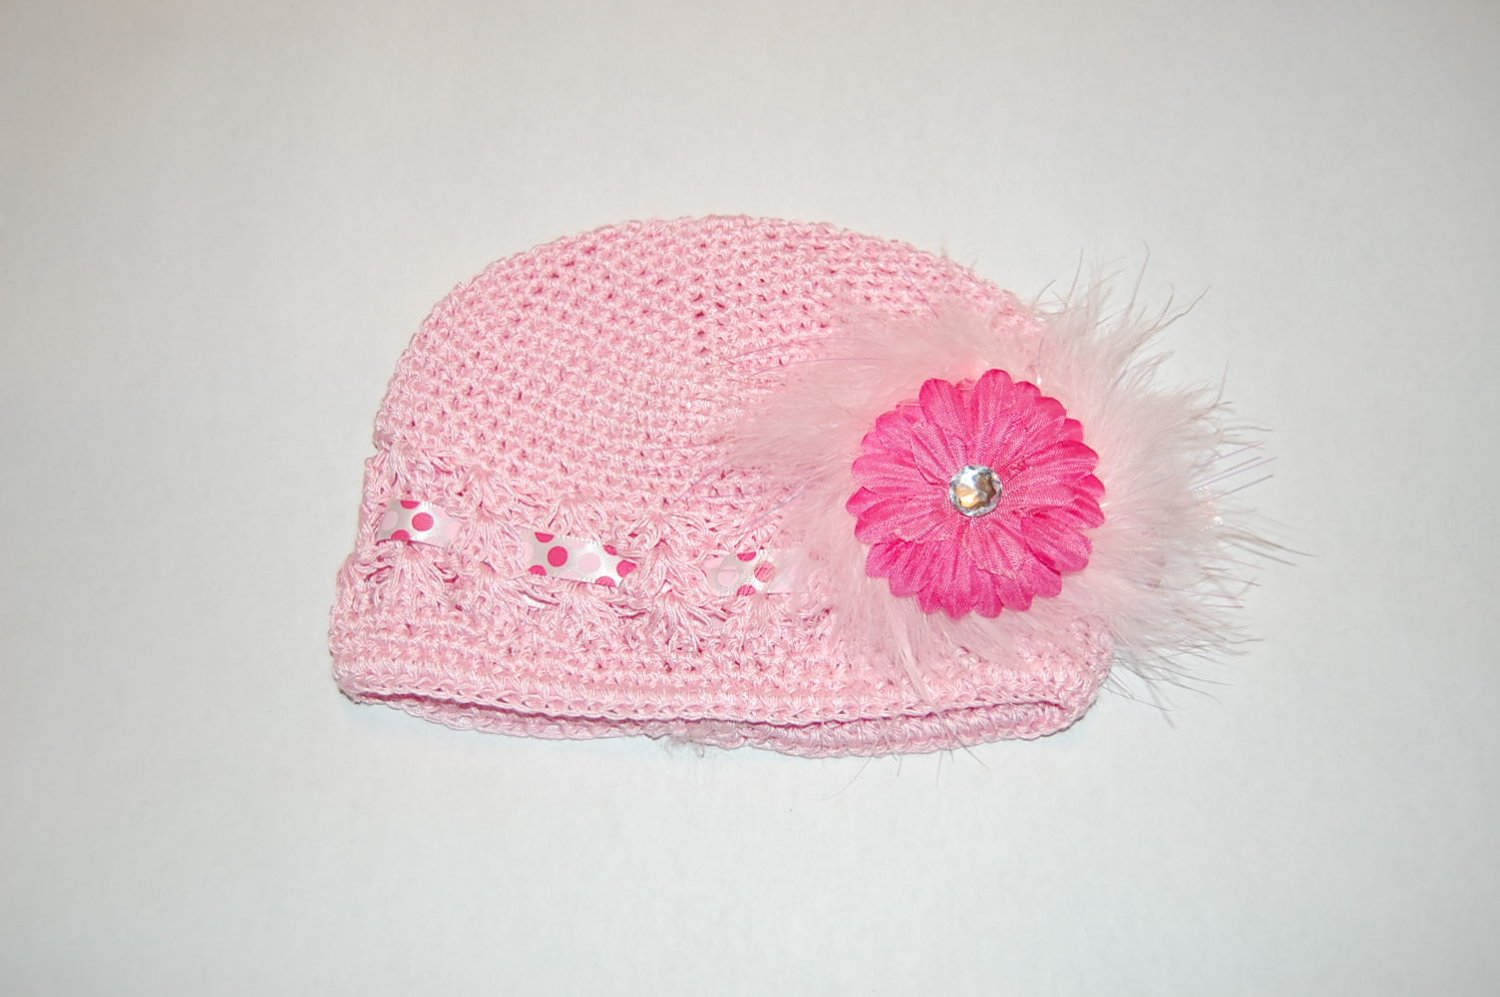 Crocheted Kufi Hat, Pink, 2' Pink Daisy,Ribbon &White Maribou Accent. Sizes NB, SM, MED, LGE